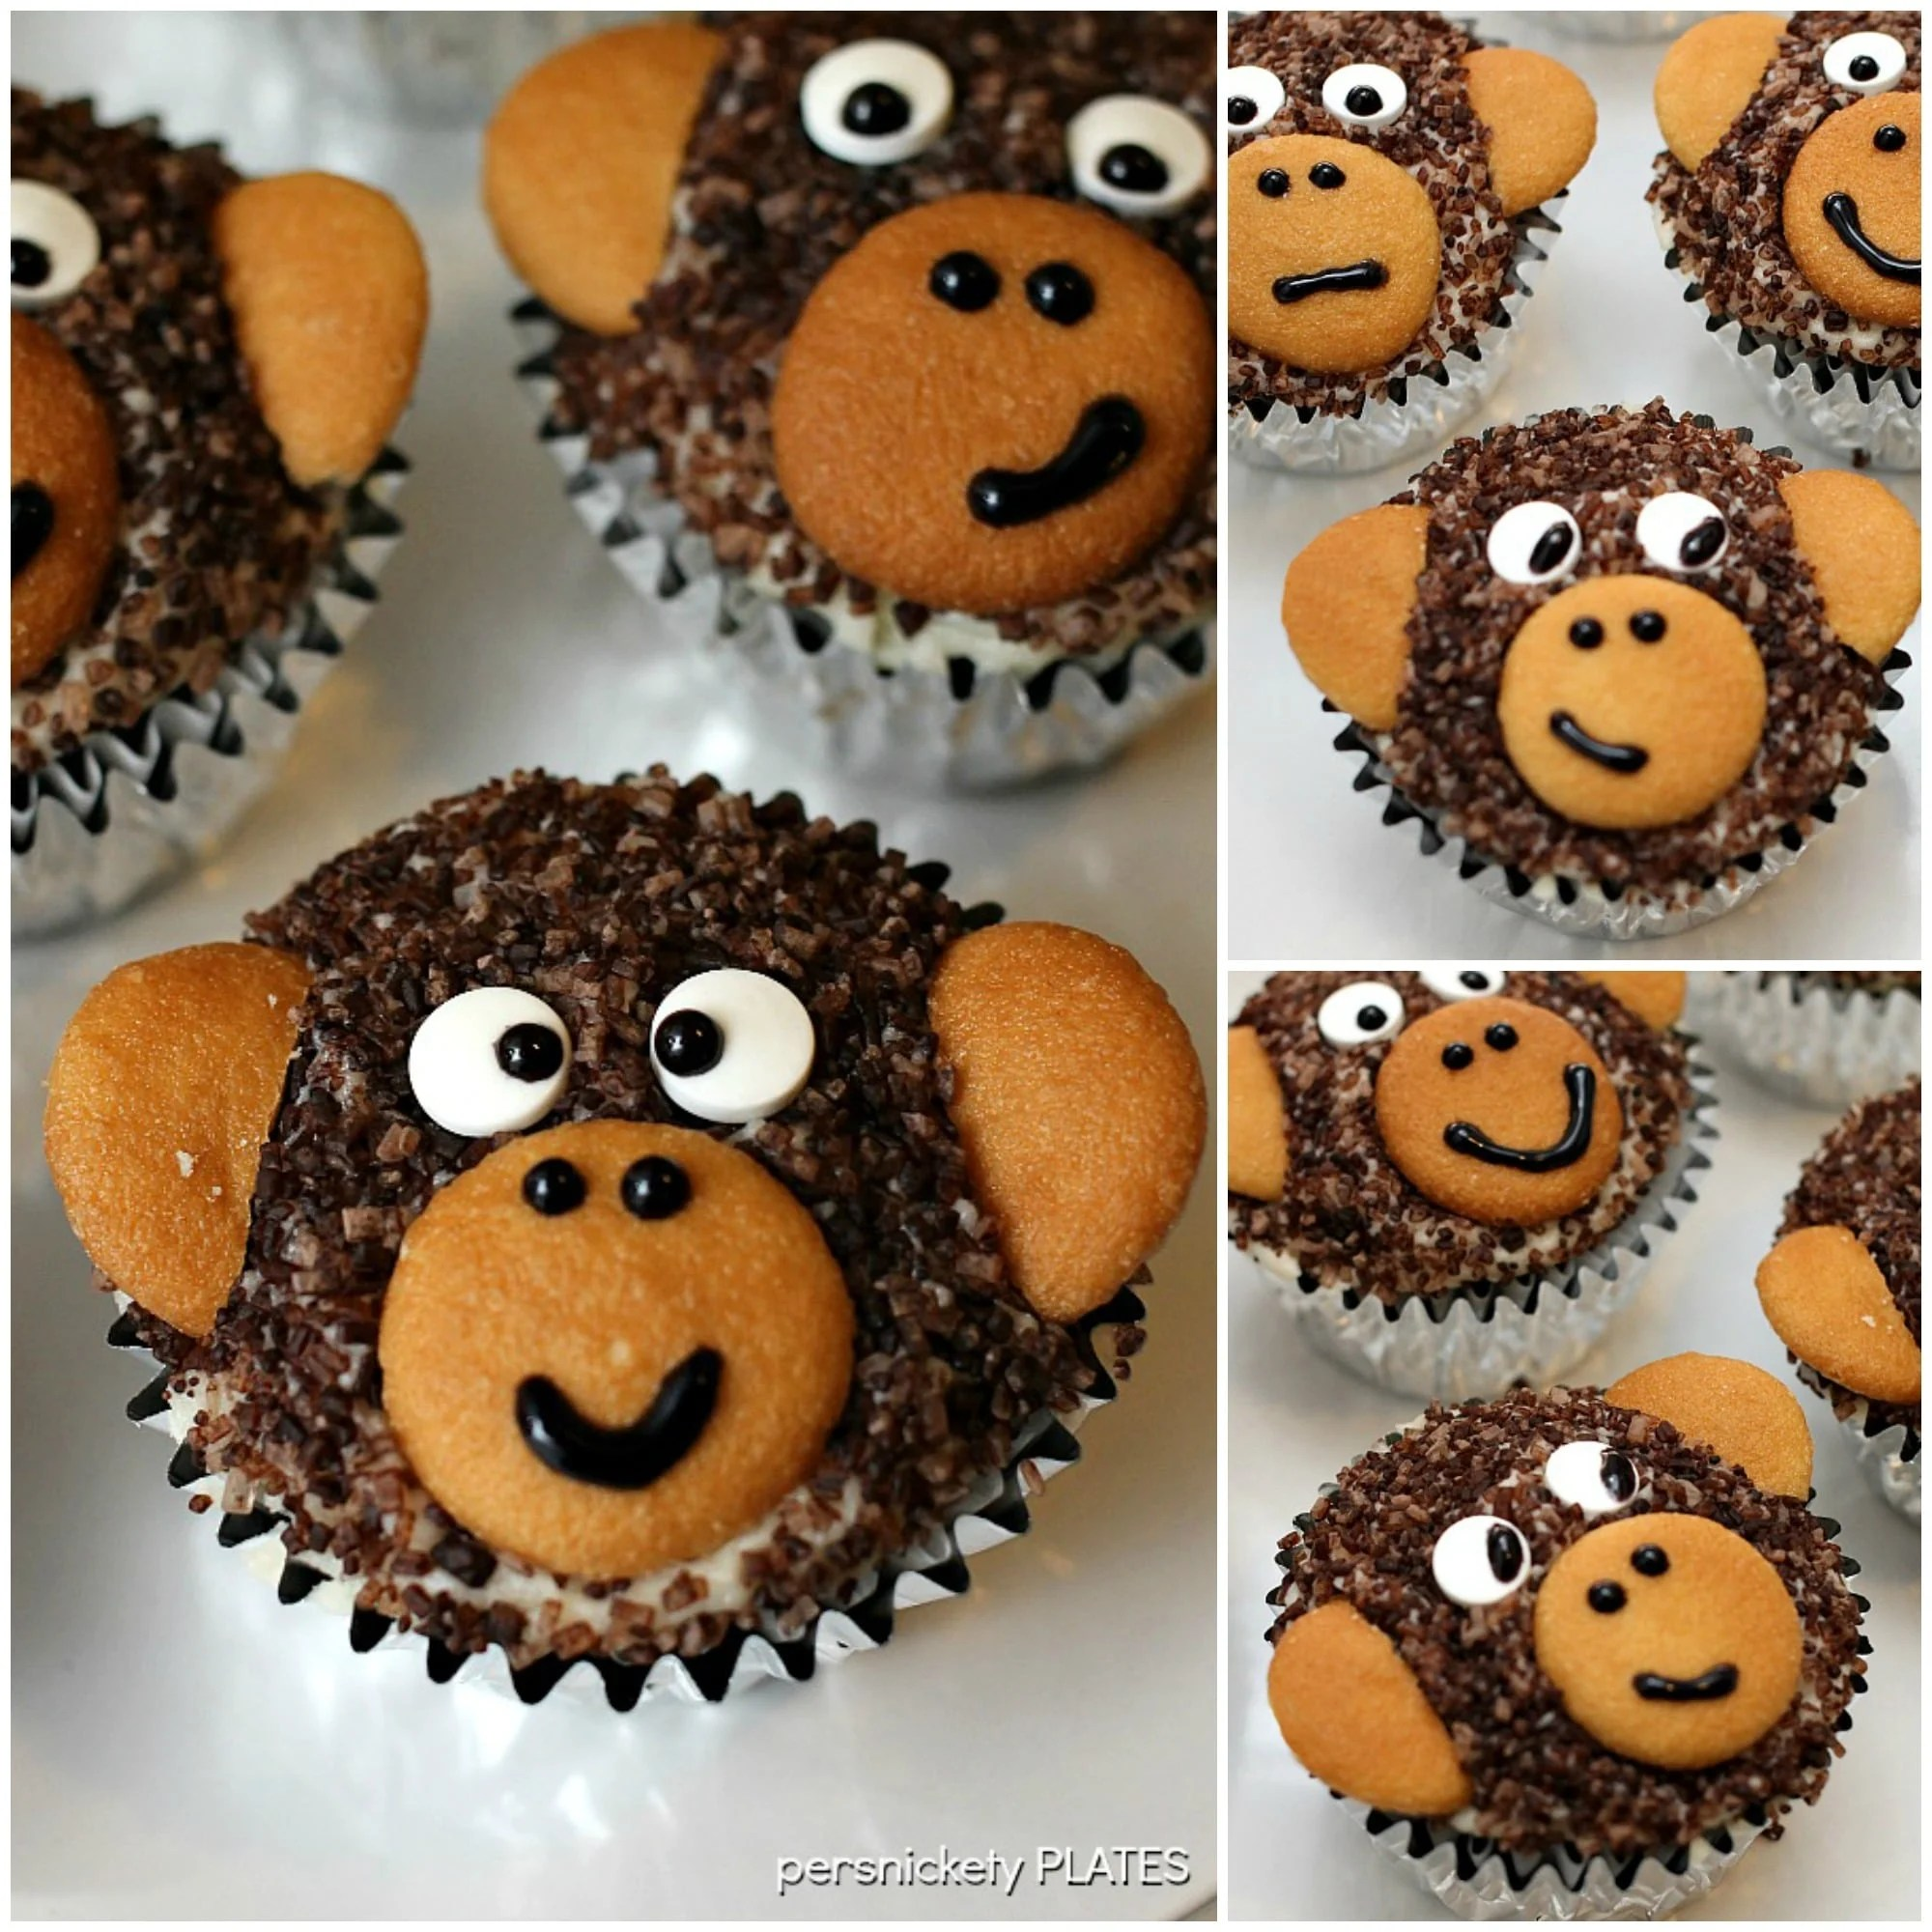 Adorable Monkey Cupcakes Homemade Chocolate With Sugar Fur And Vanilla Wafer